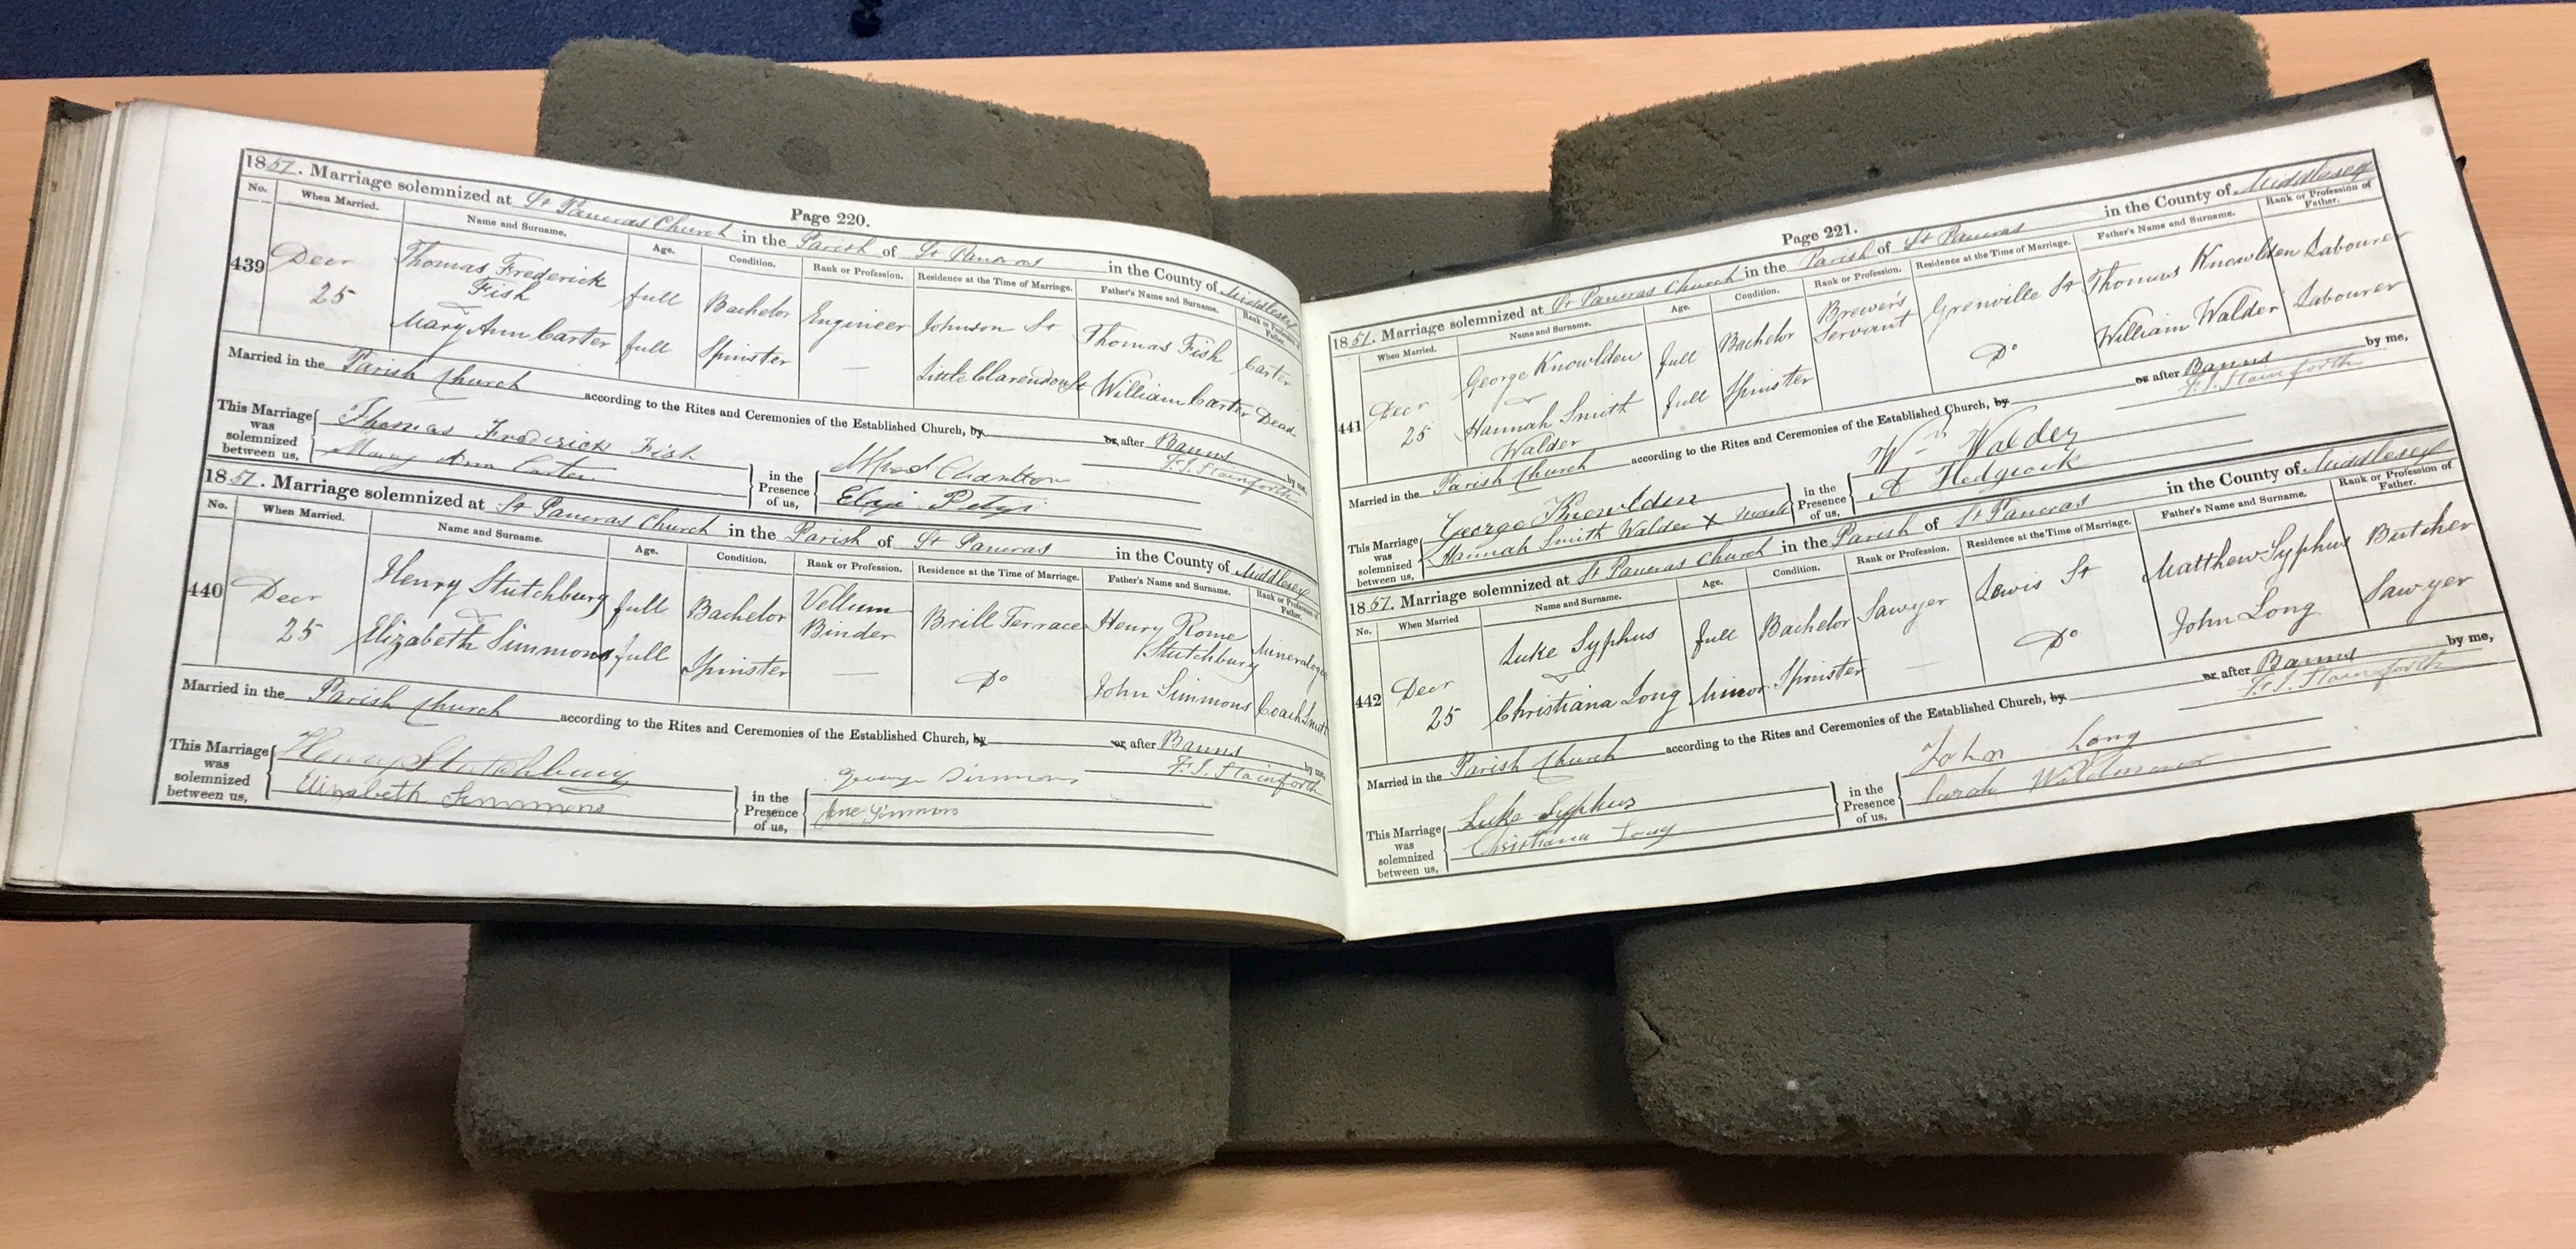 The St. Pancras Parish's book containing the marriage record of Elder David A Bender's great-great-great-grandparents, Luke Syphus and Christiana Long, as shown to the apostle at the City of London Archives on Oct. 24, 2019.